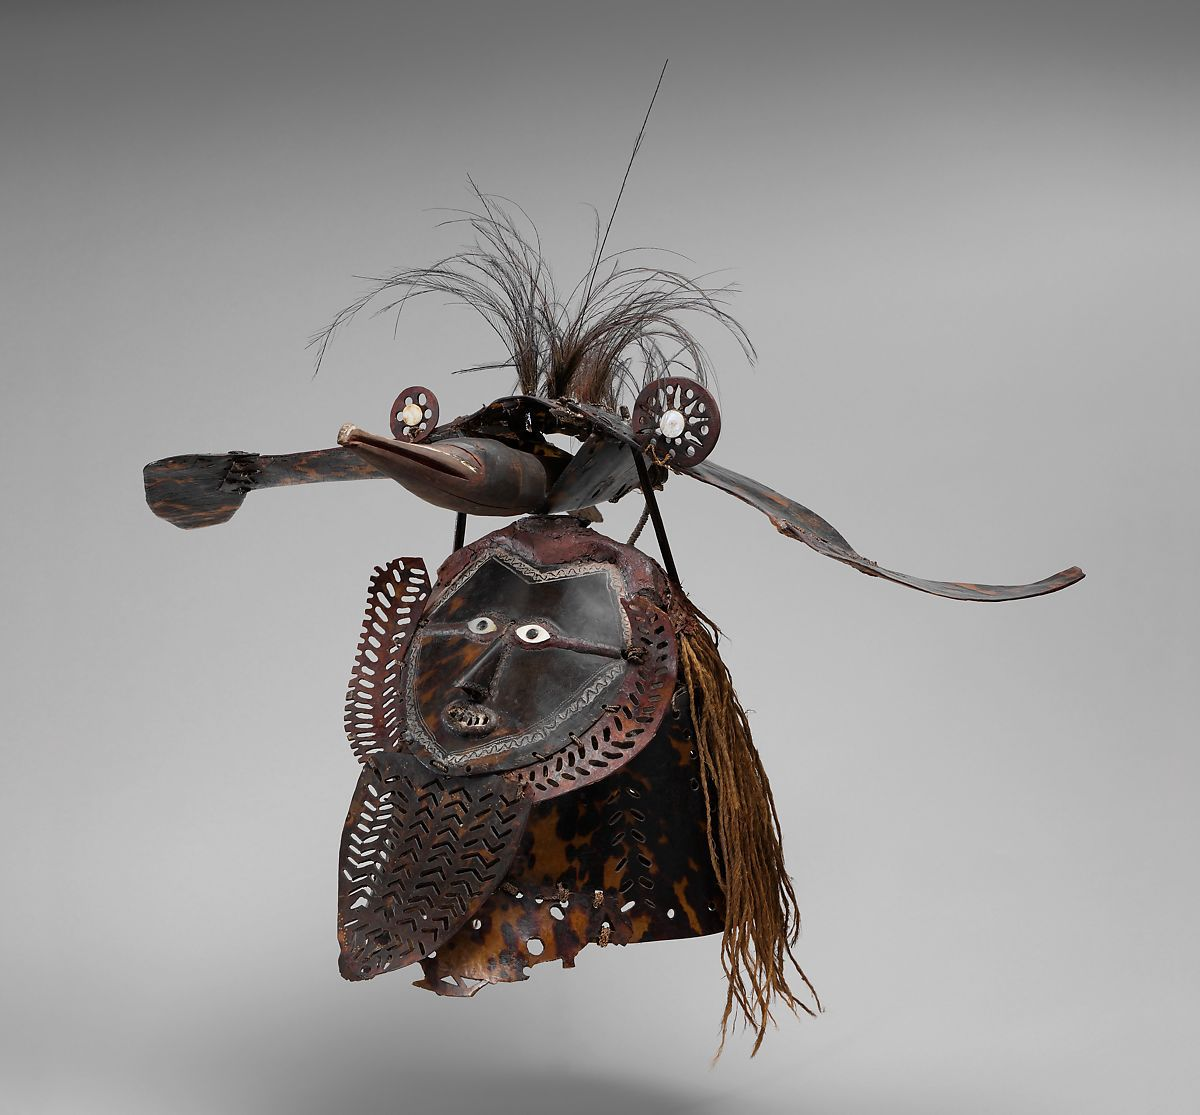 Mask (Buk, Krar, or Kara) - Photos: The MET